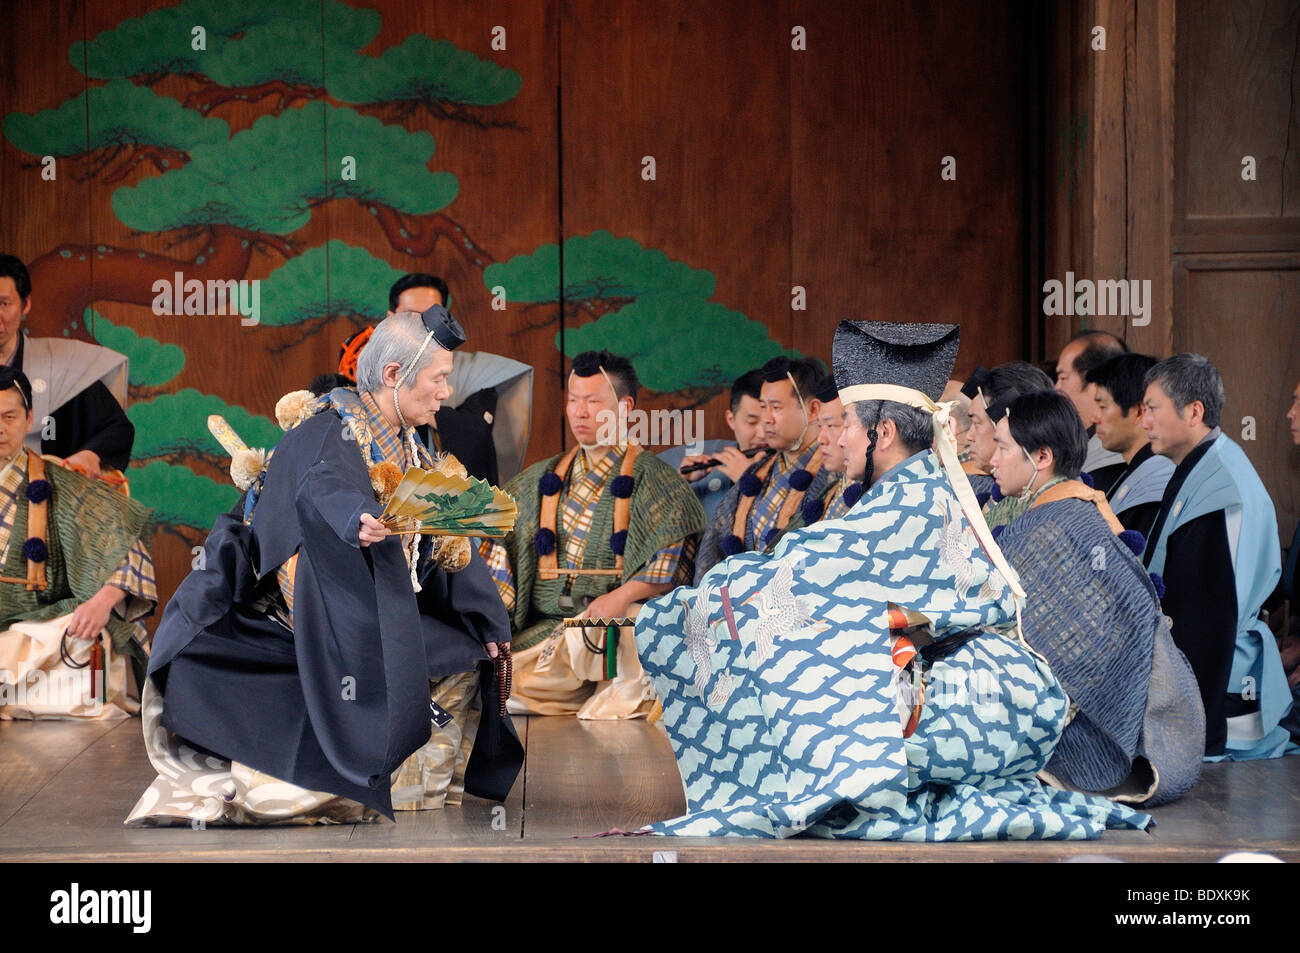 No play, famous traditional dance theater in a Shinto shrine in Sasayama, Japan, Asia - Stock Image